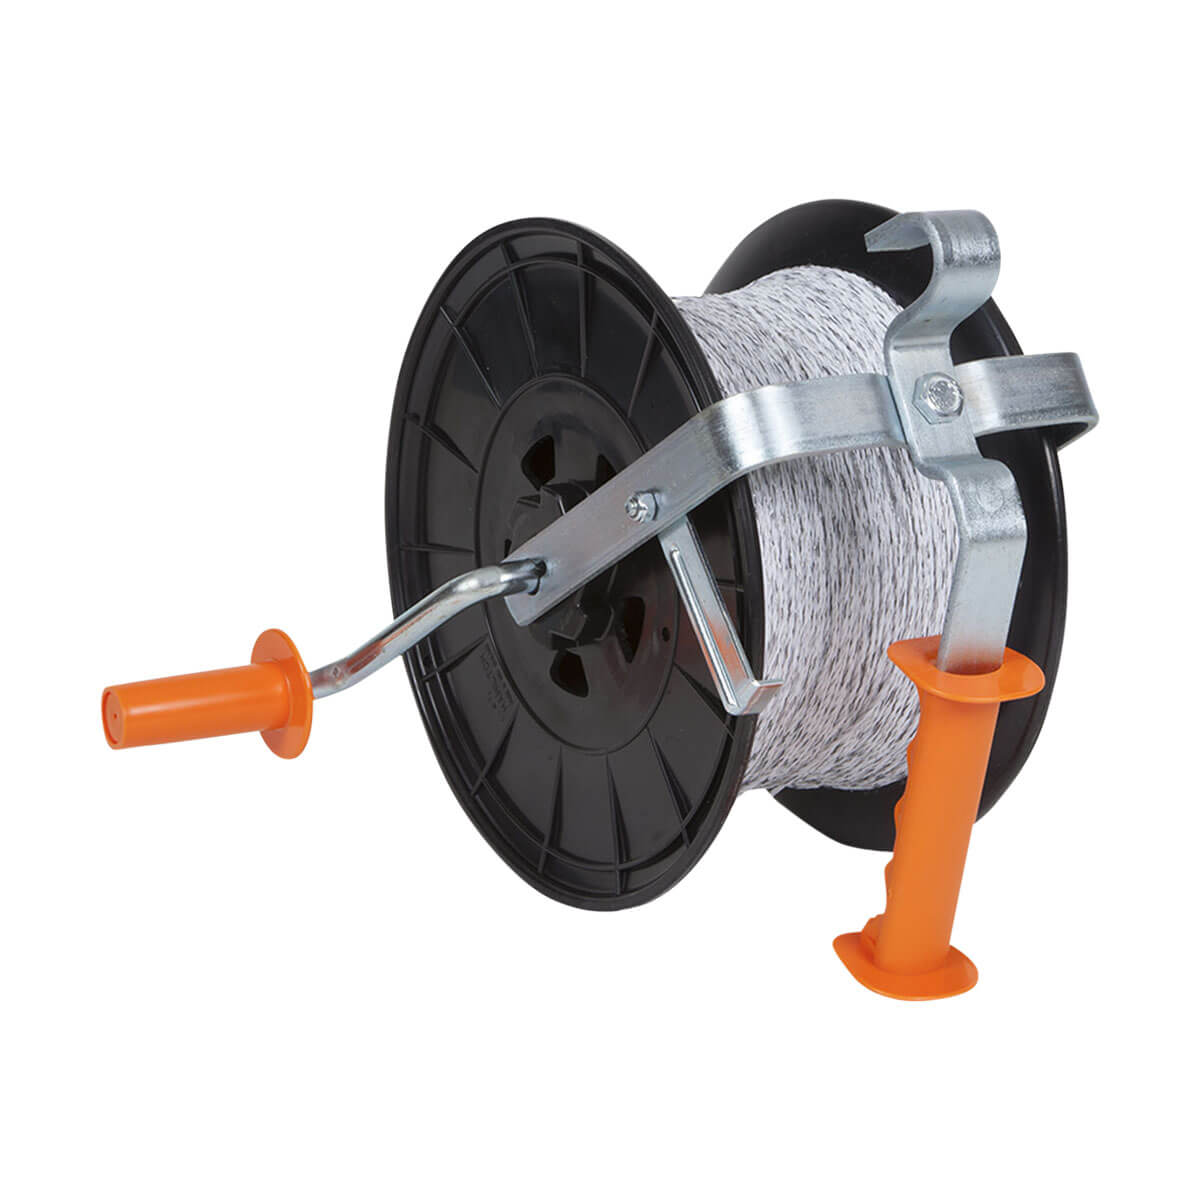 Gallagher Econo Reel - G616014 - Pre-wound with 500m white polywire